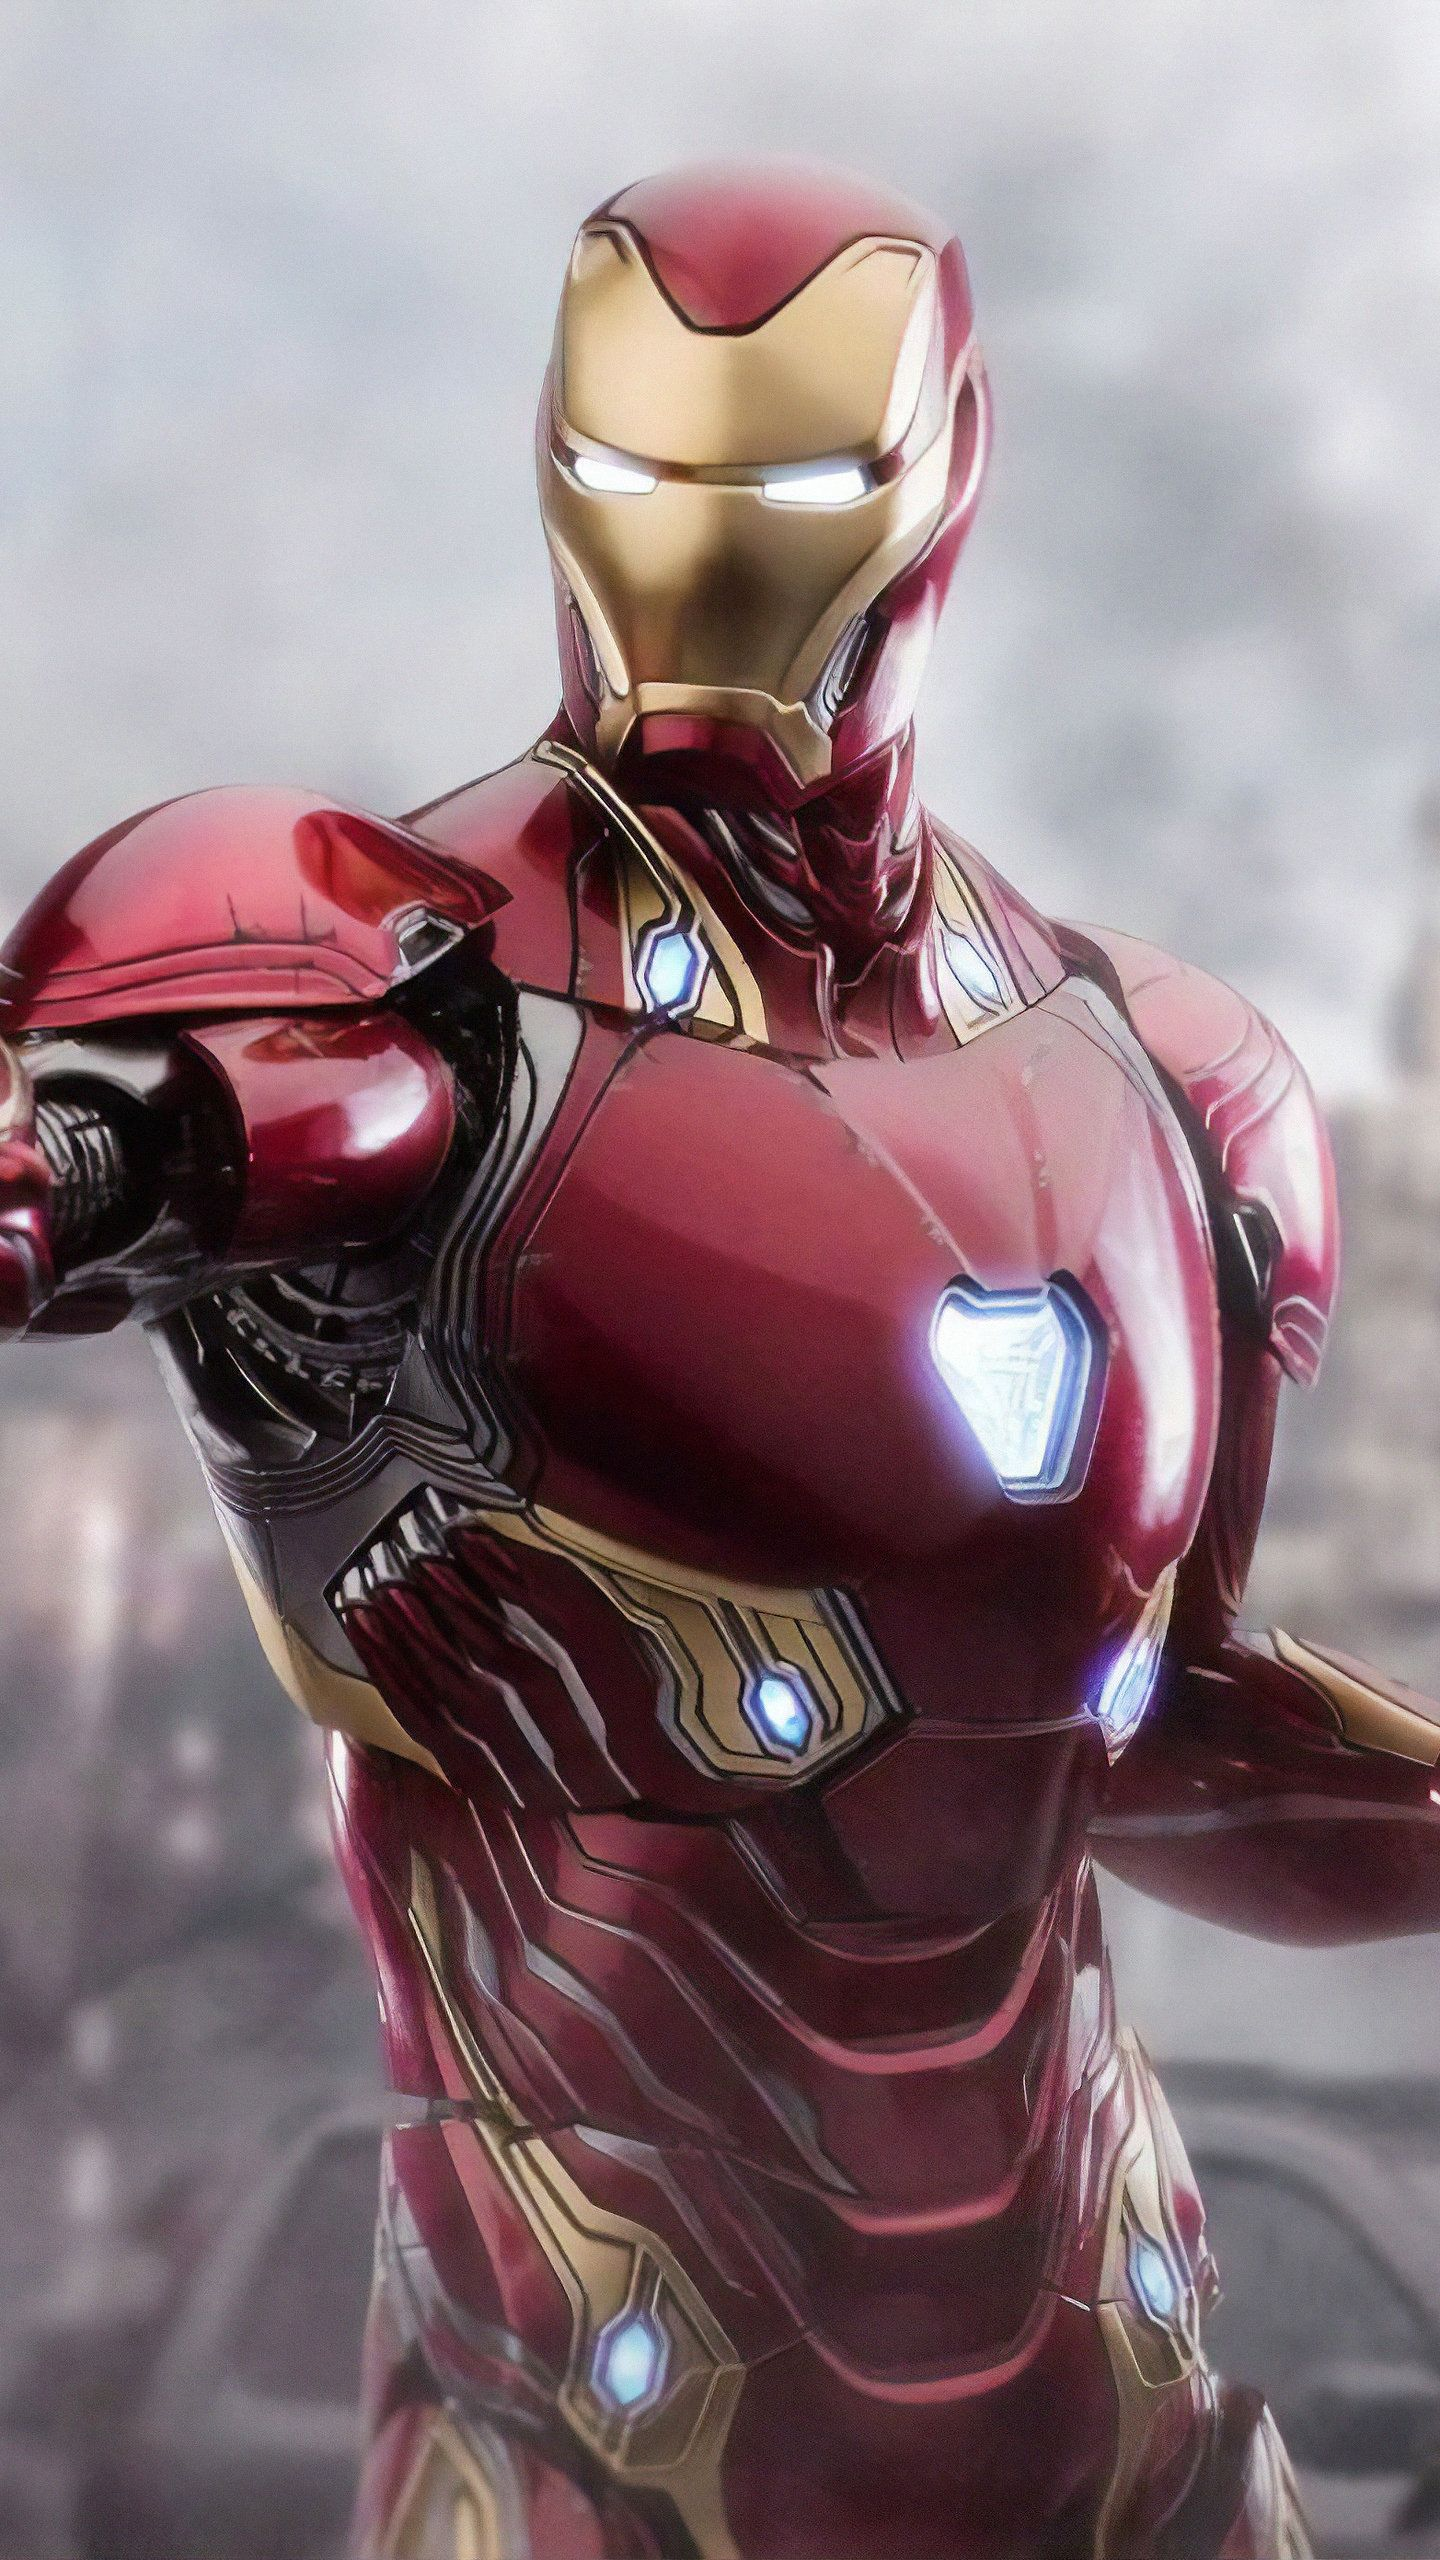 4k Iron Man Endgame Hd Wallpaper Iron Man Avengers Iron Man Armor Iron Man